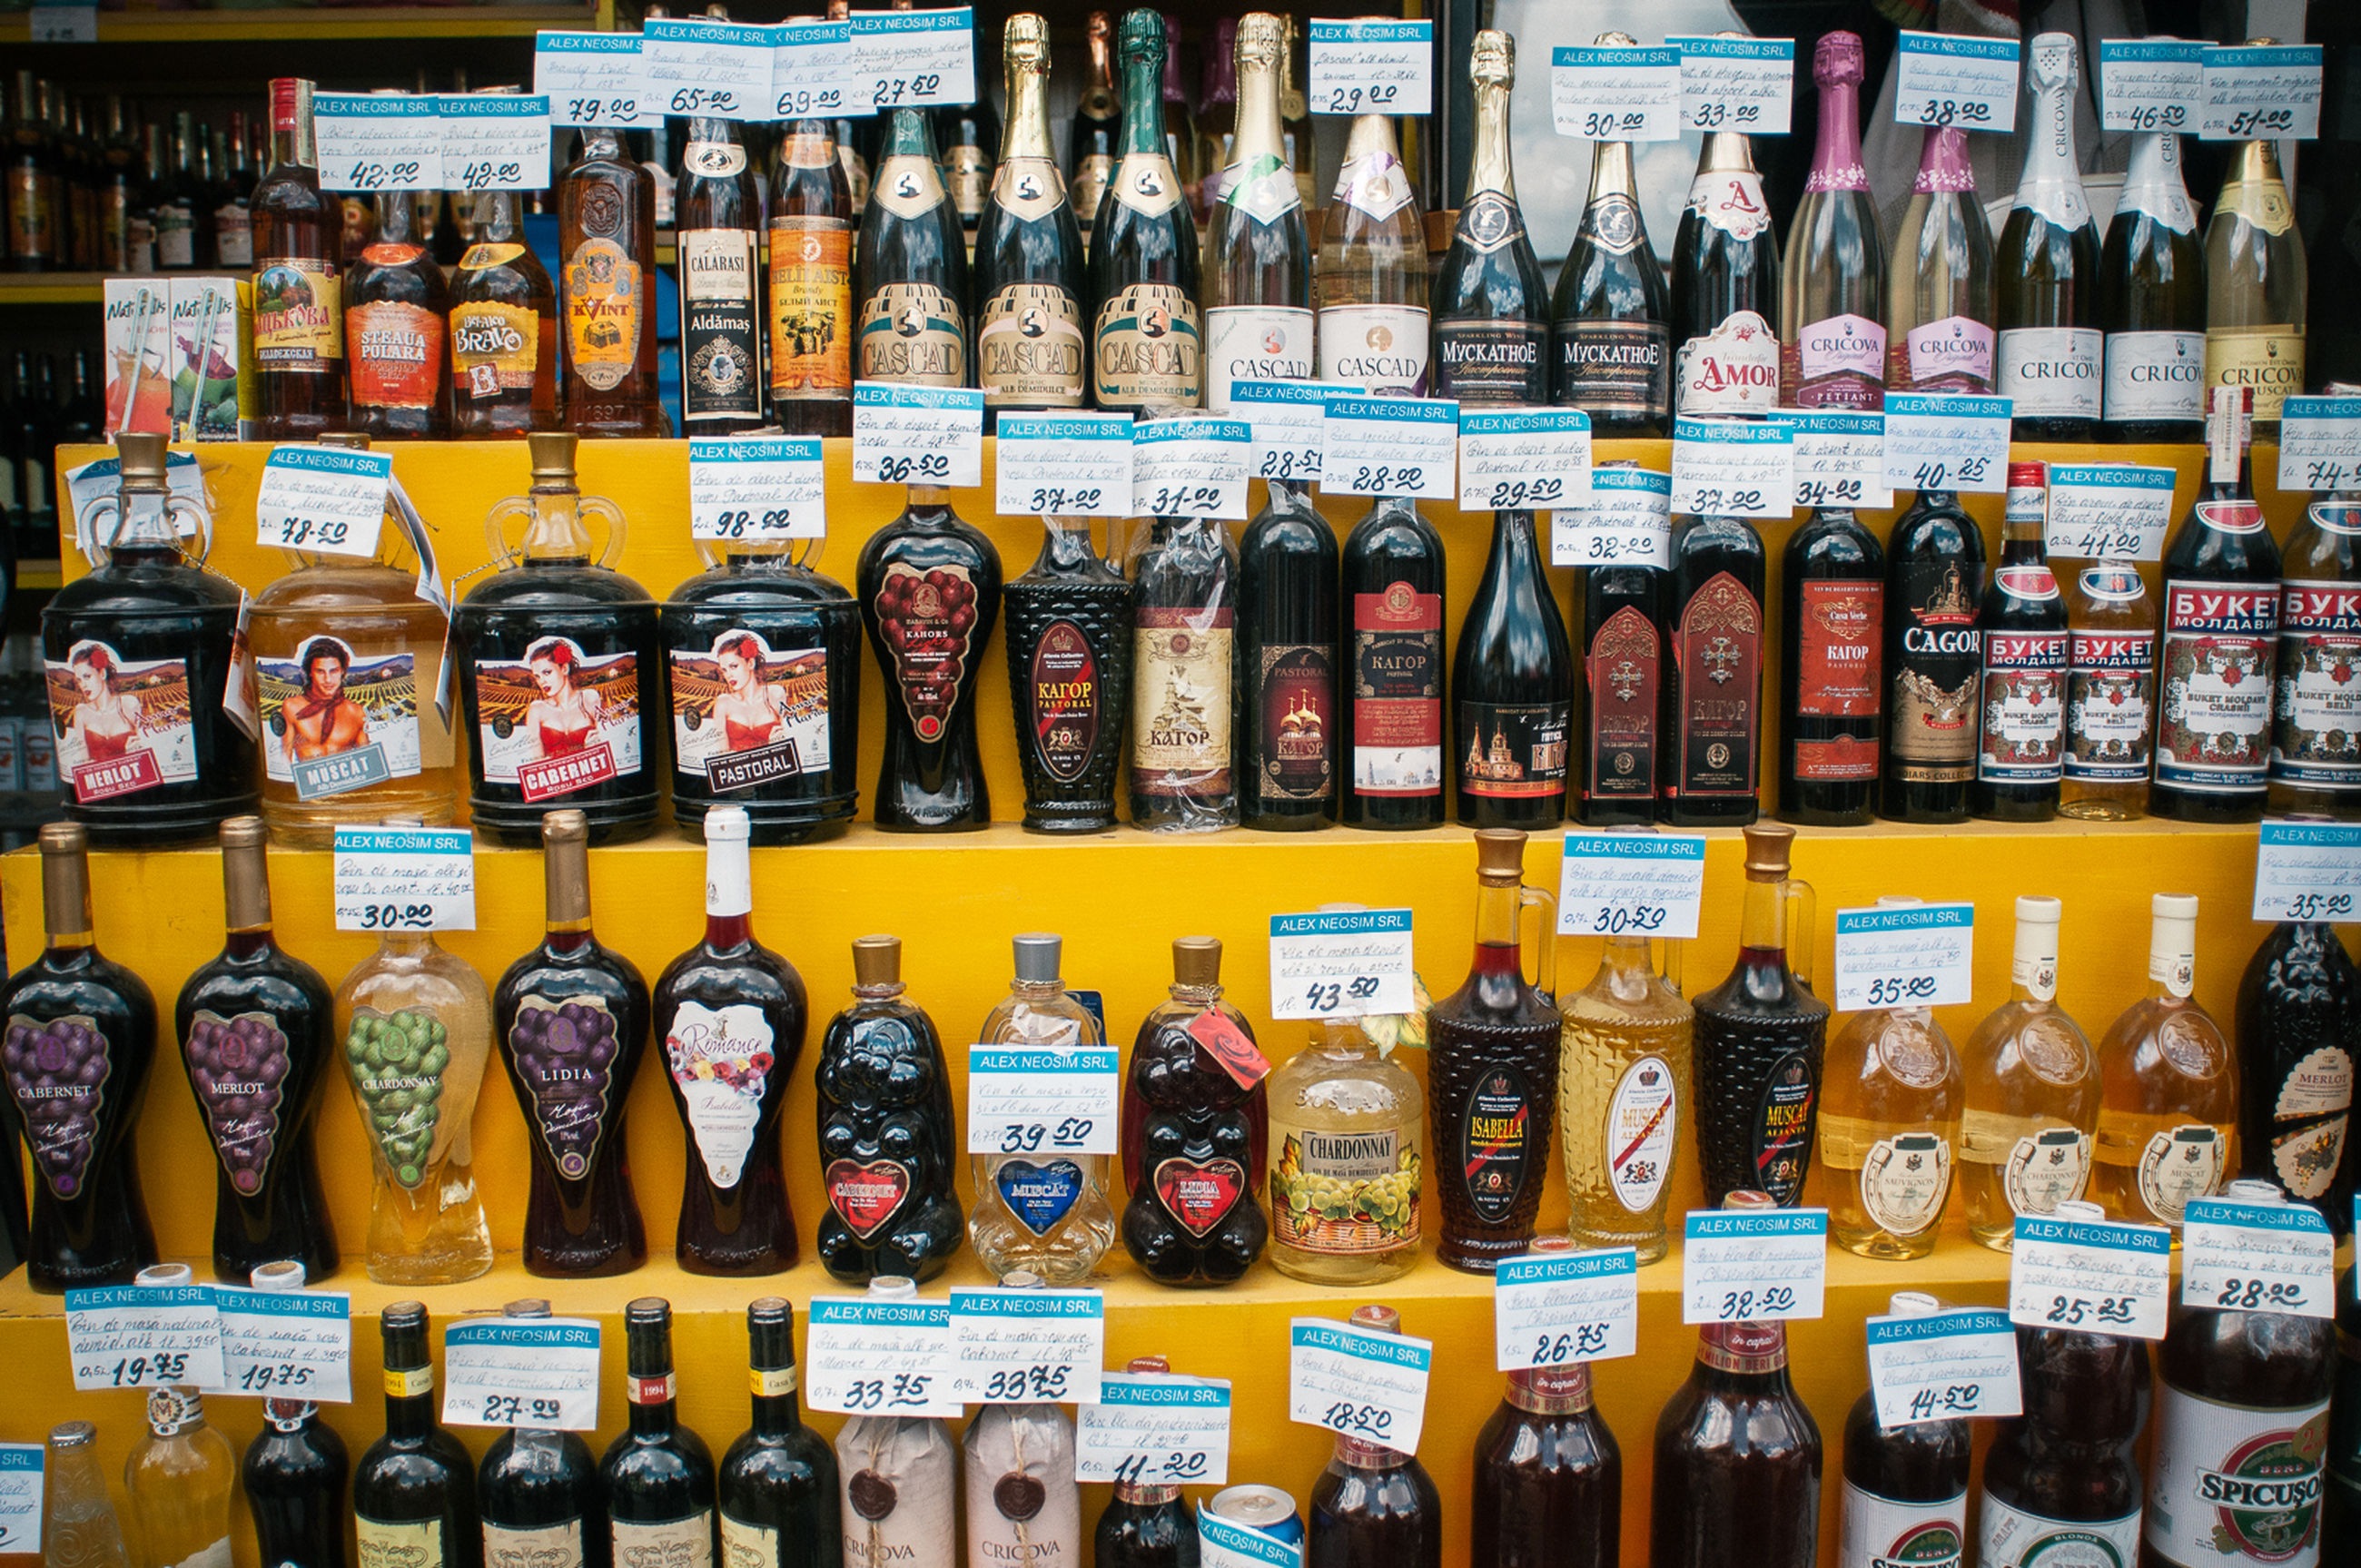 for sale, large group of objects, choice, retail, variation, abundance, indoors, text, shelf, bottle, no people, arrangement, store, full frame, market, food, price tag, day, supermarket